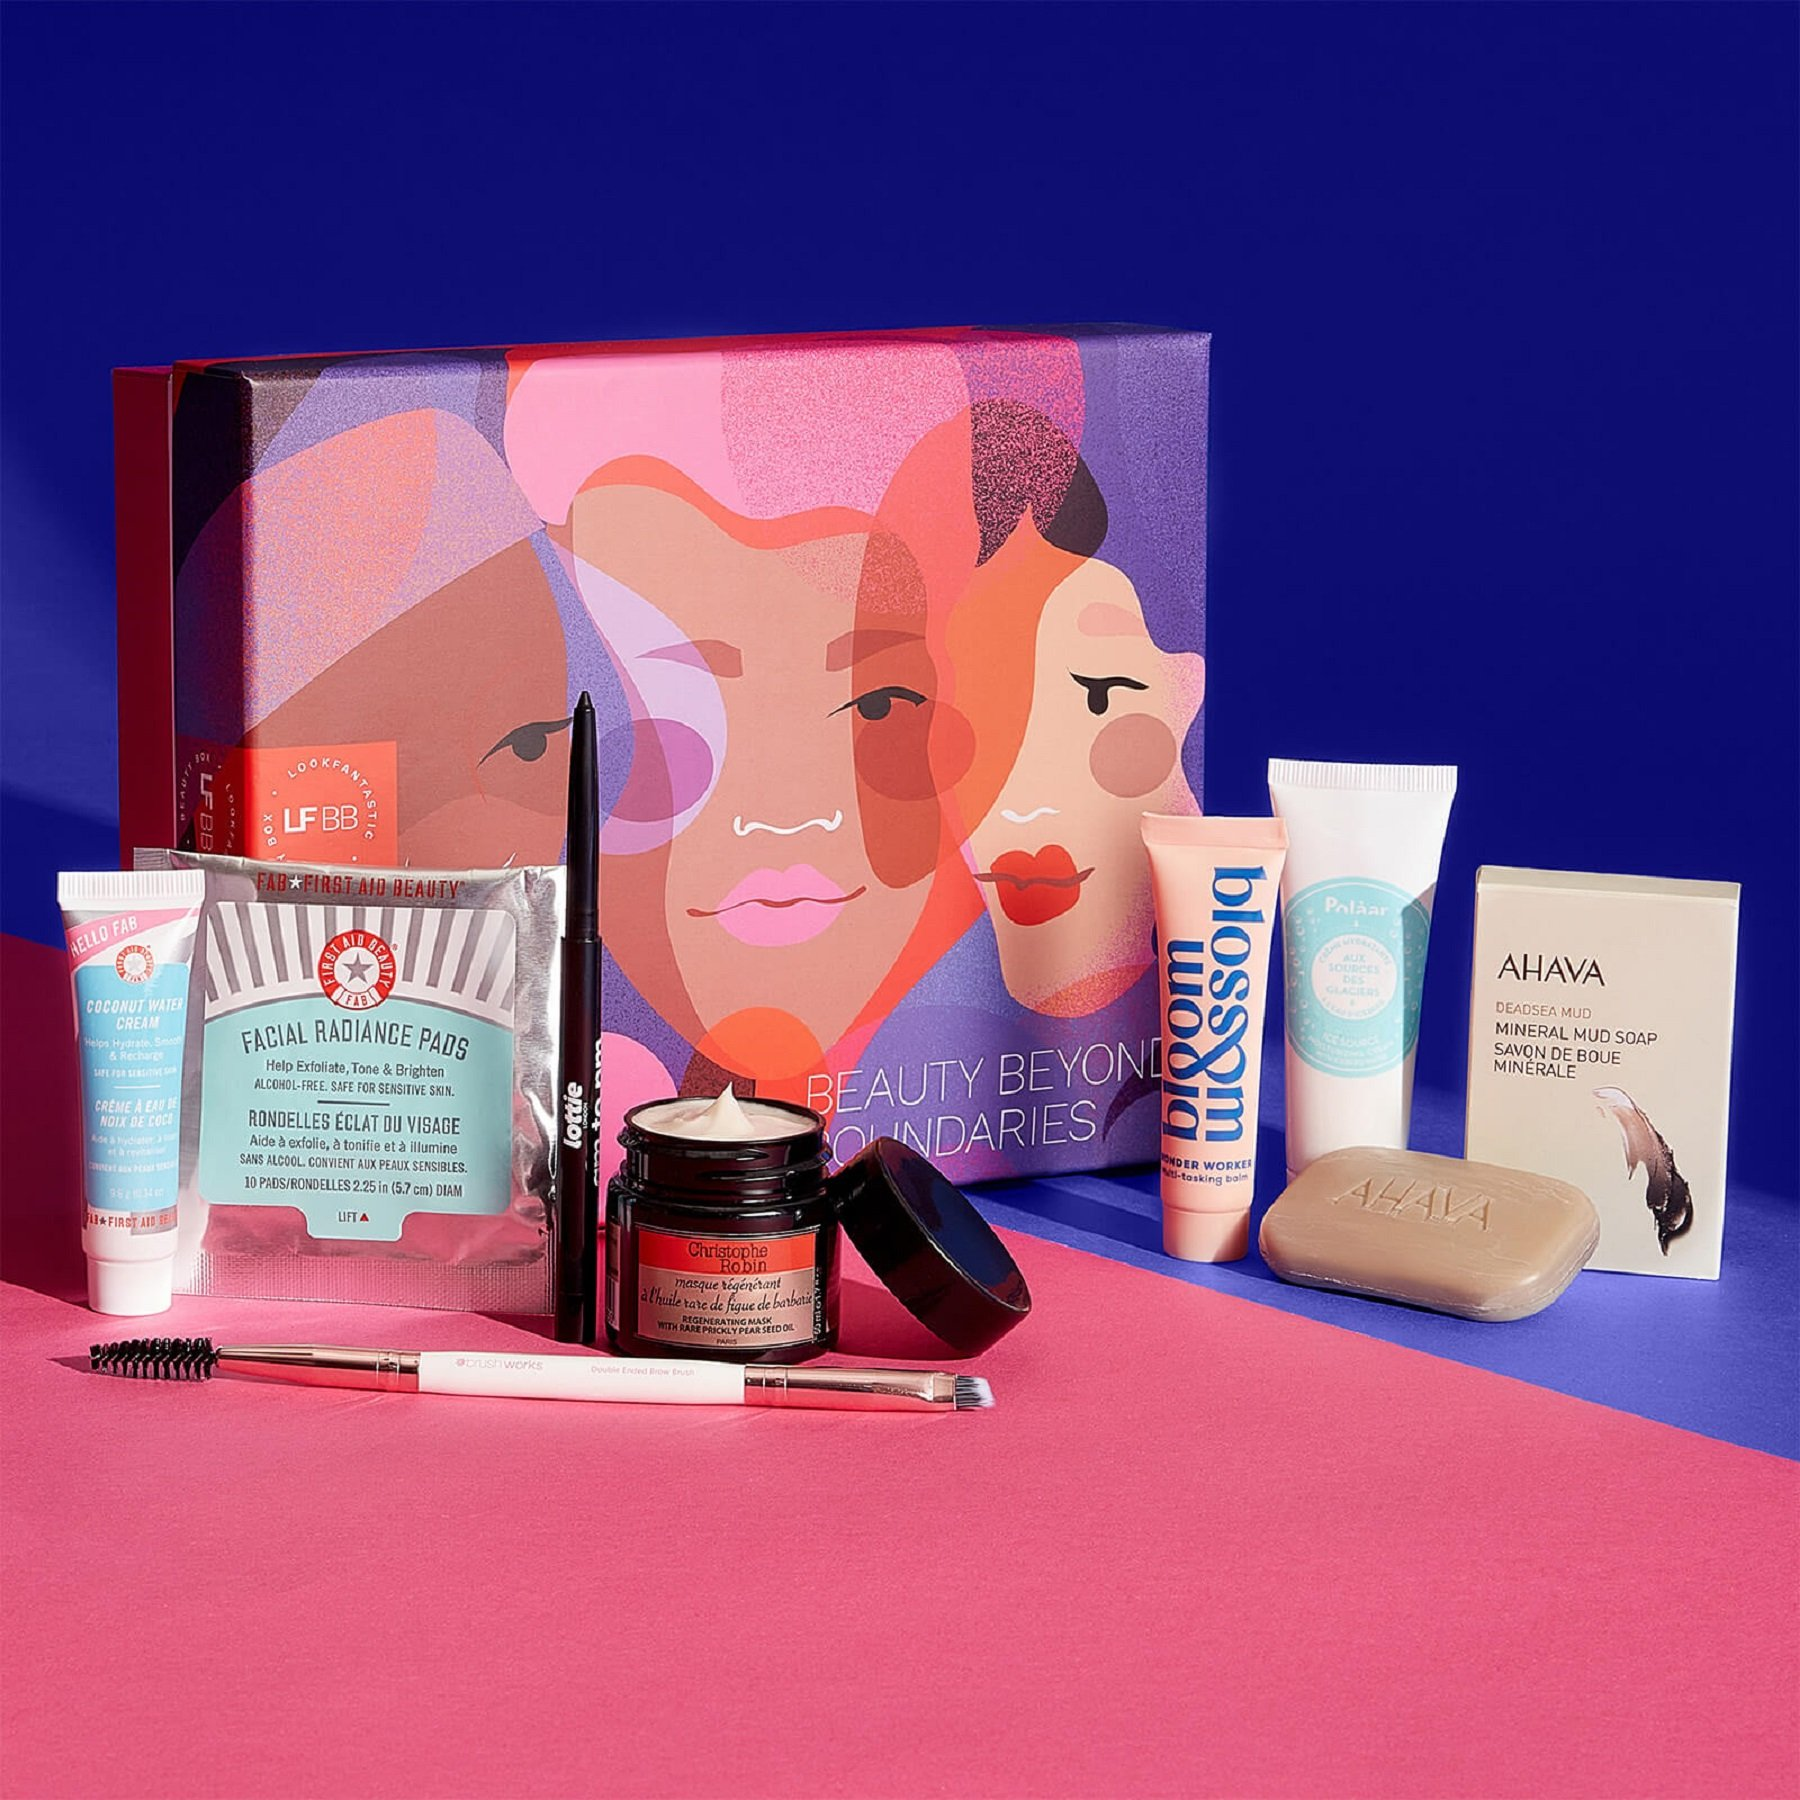 Discover our March 'Beauty Beyond Boundaries' Edition LOOKFANTASTIC Beauty Box